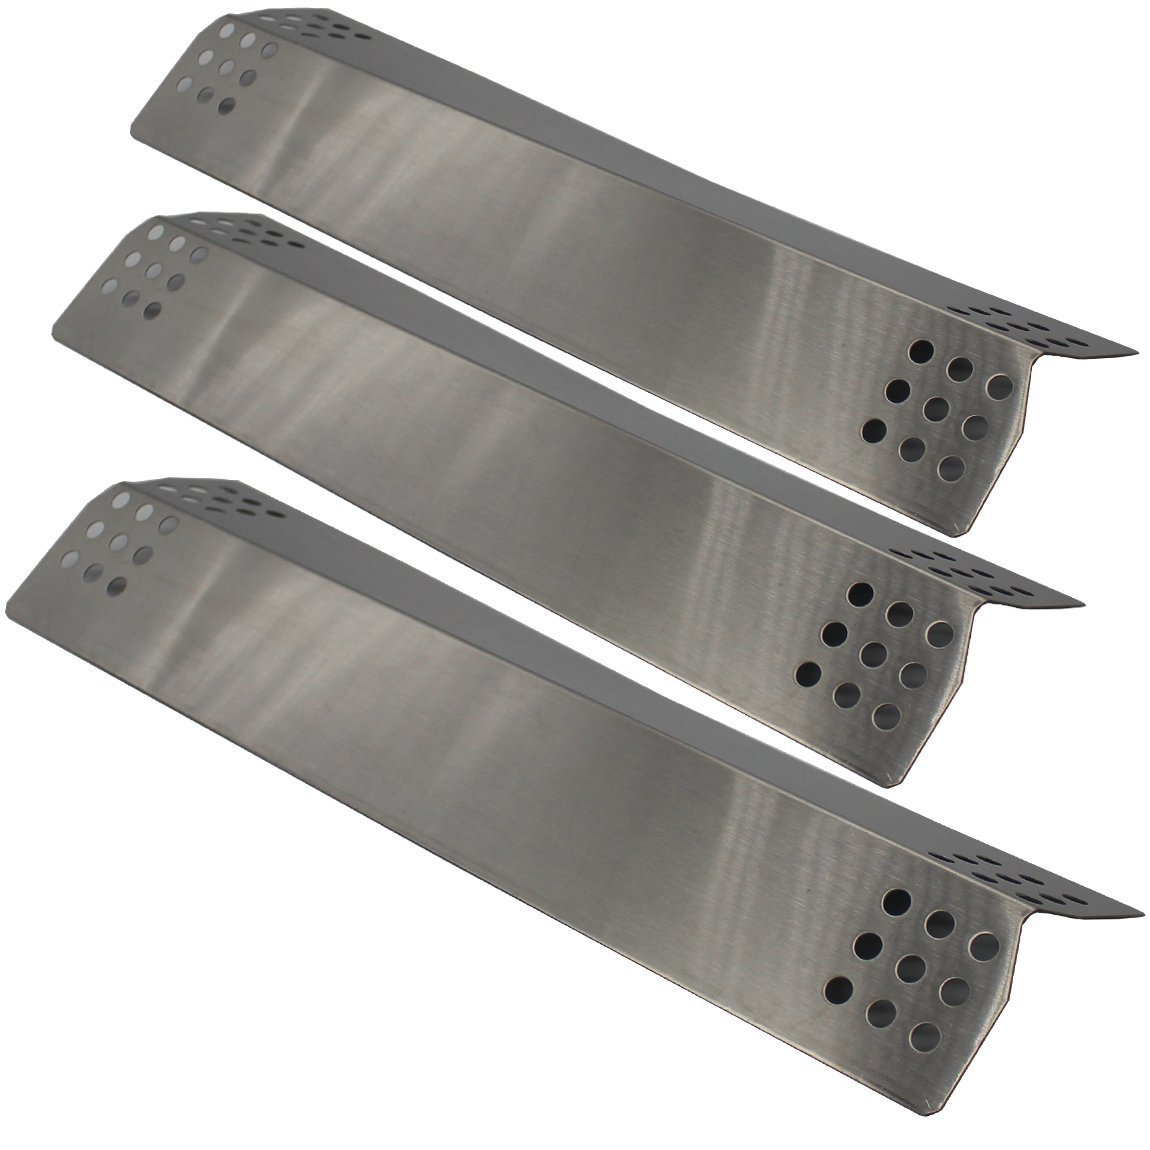 BBQration 3 Pack Stainless Steel Heat Plate Replacement for Gas Grill Model Kitchen Aid 720-0787D, 720-0819 (16 9/16 x 4 1/2)